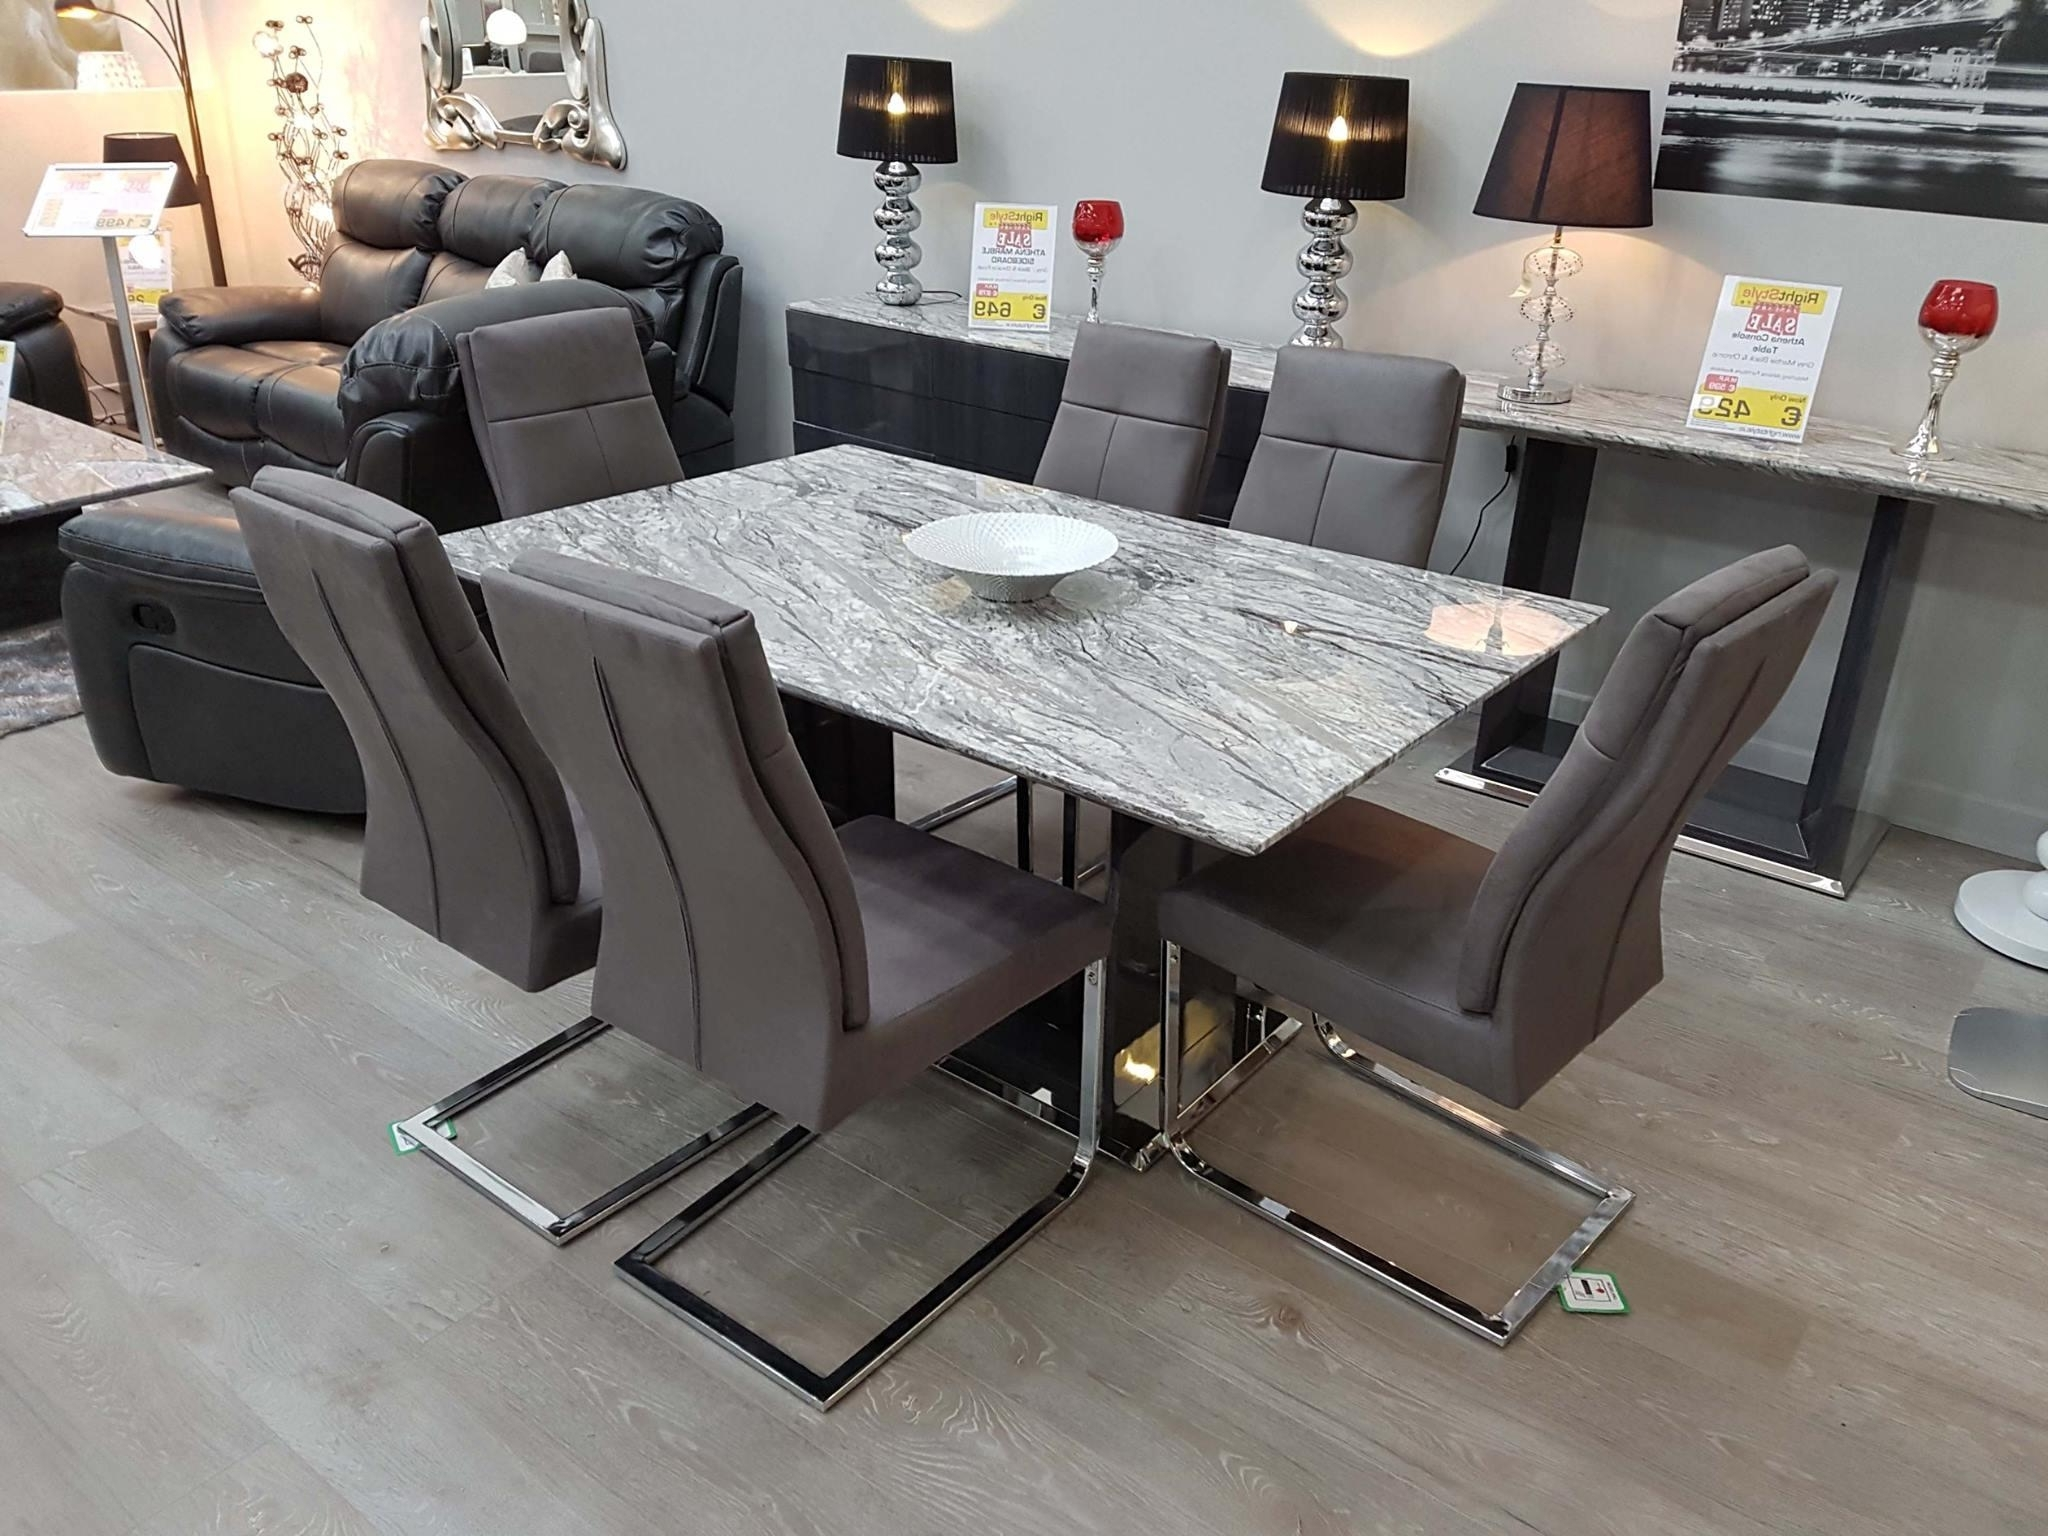 Solid Marble Dining Tables Inside Most Recent Athena 160Cm Solid Marble Dining Set – Dublin, Ireland Furniture (View 8 of 25)